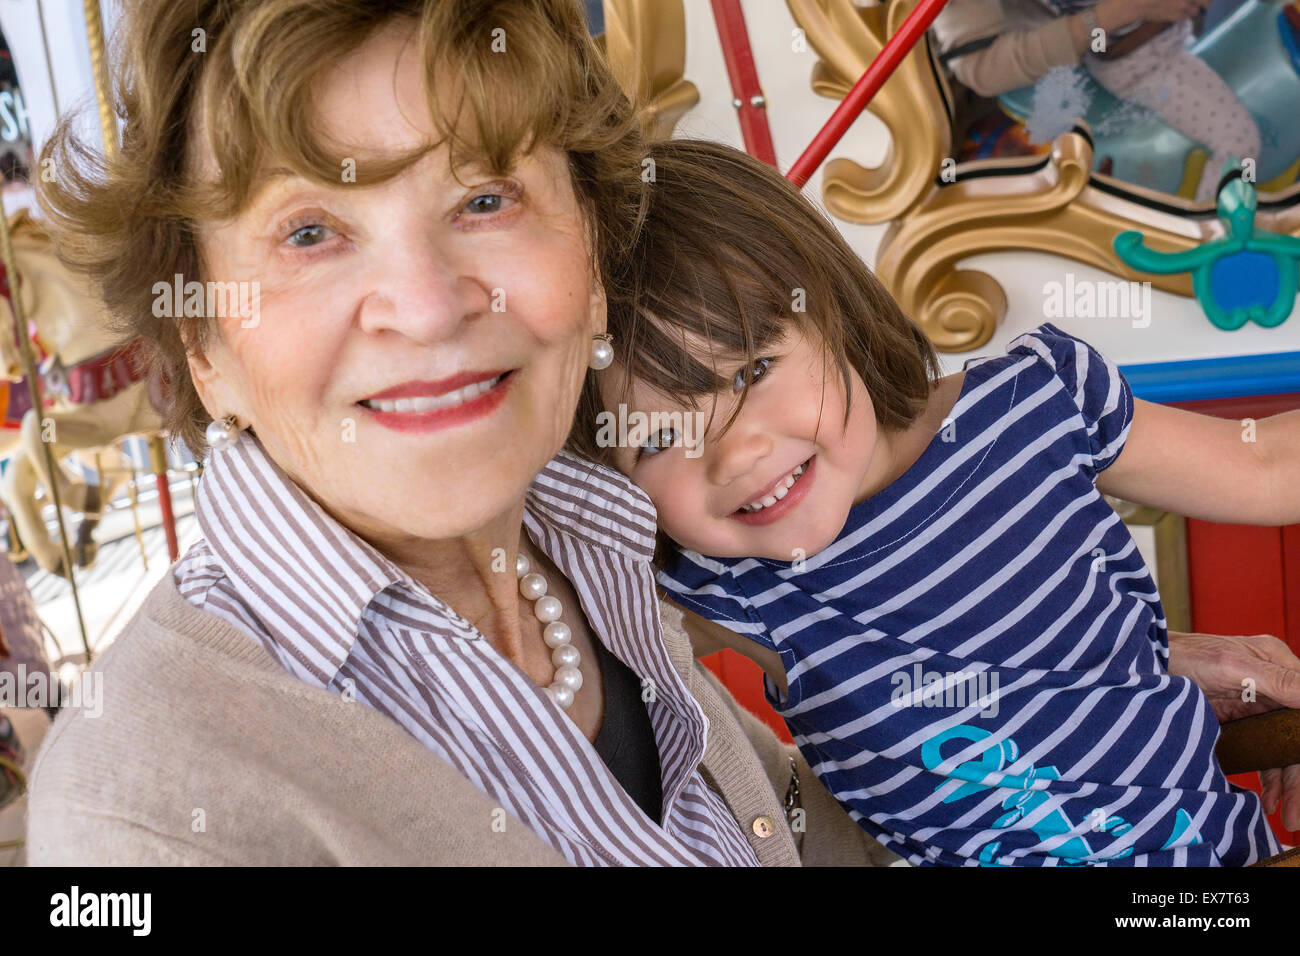 Toddler girl with her great-grandmother at the merry-go-round, San Diego, California - Stock Image